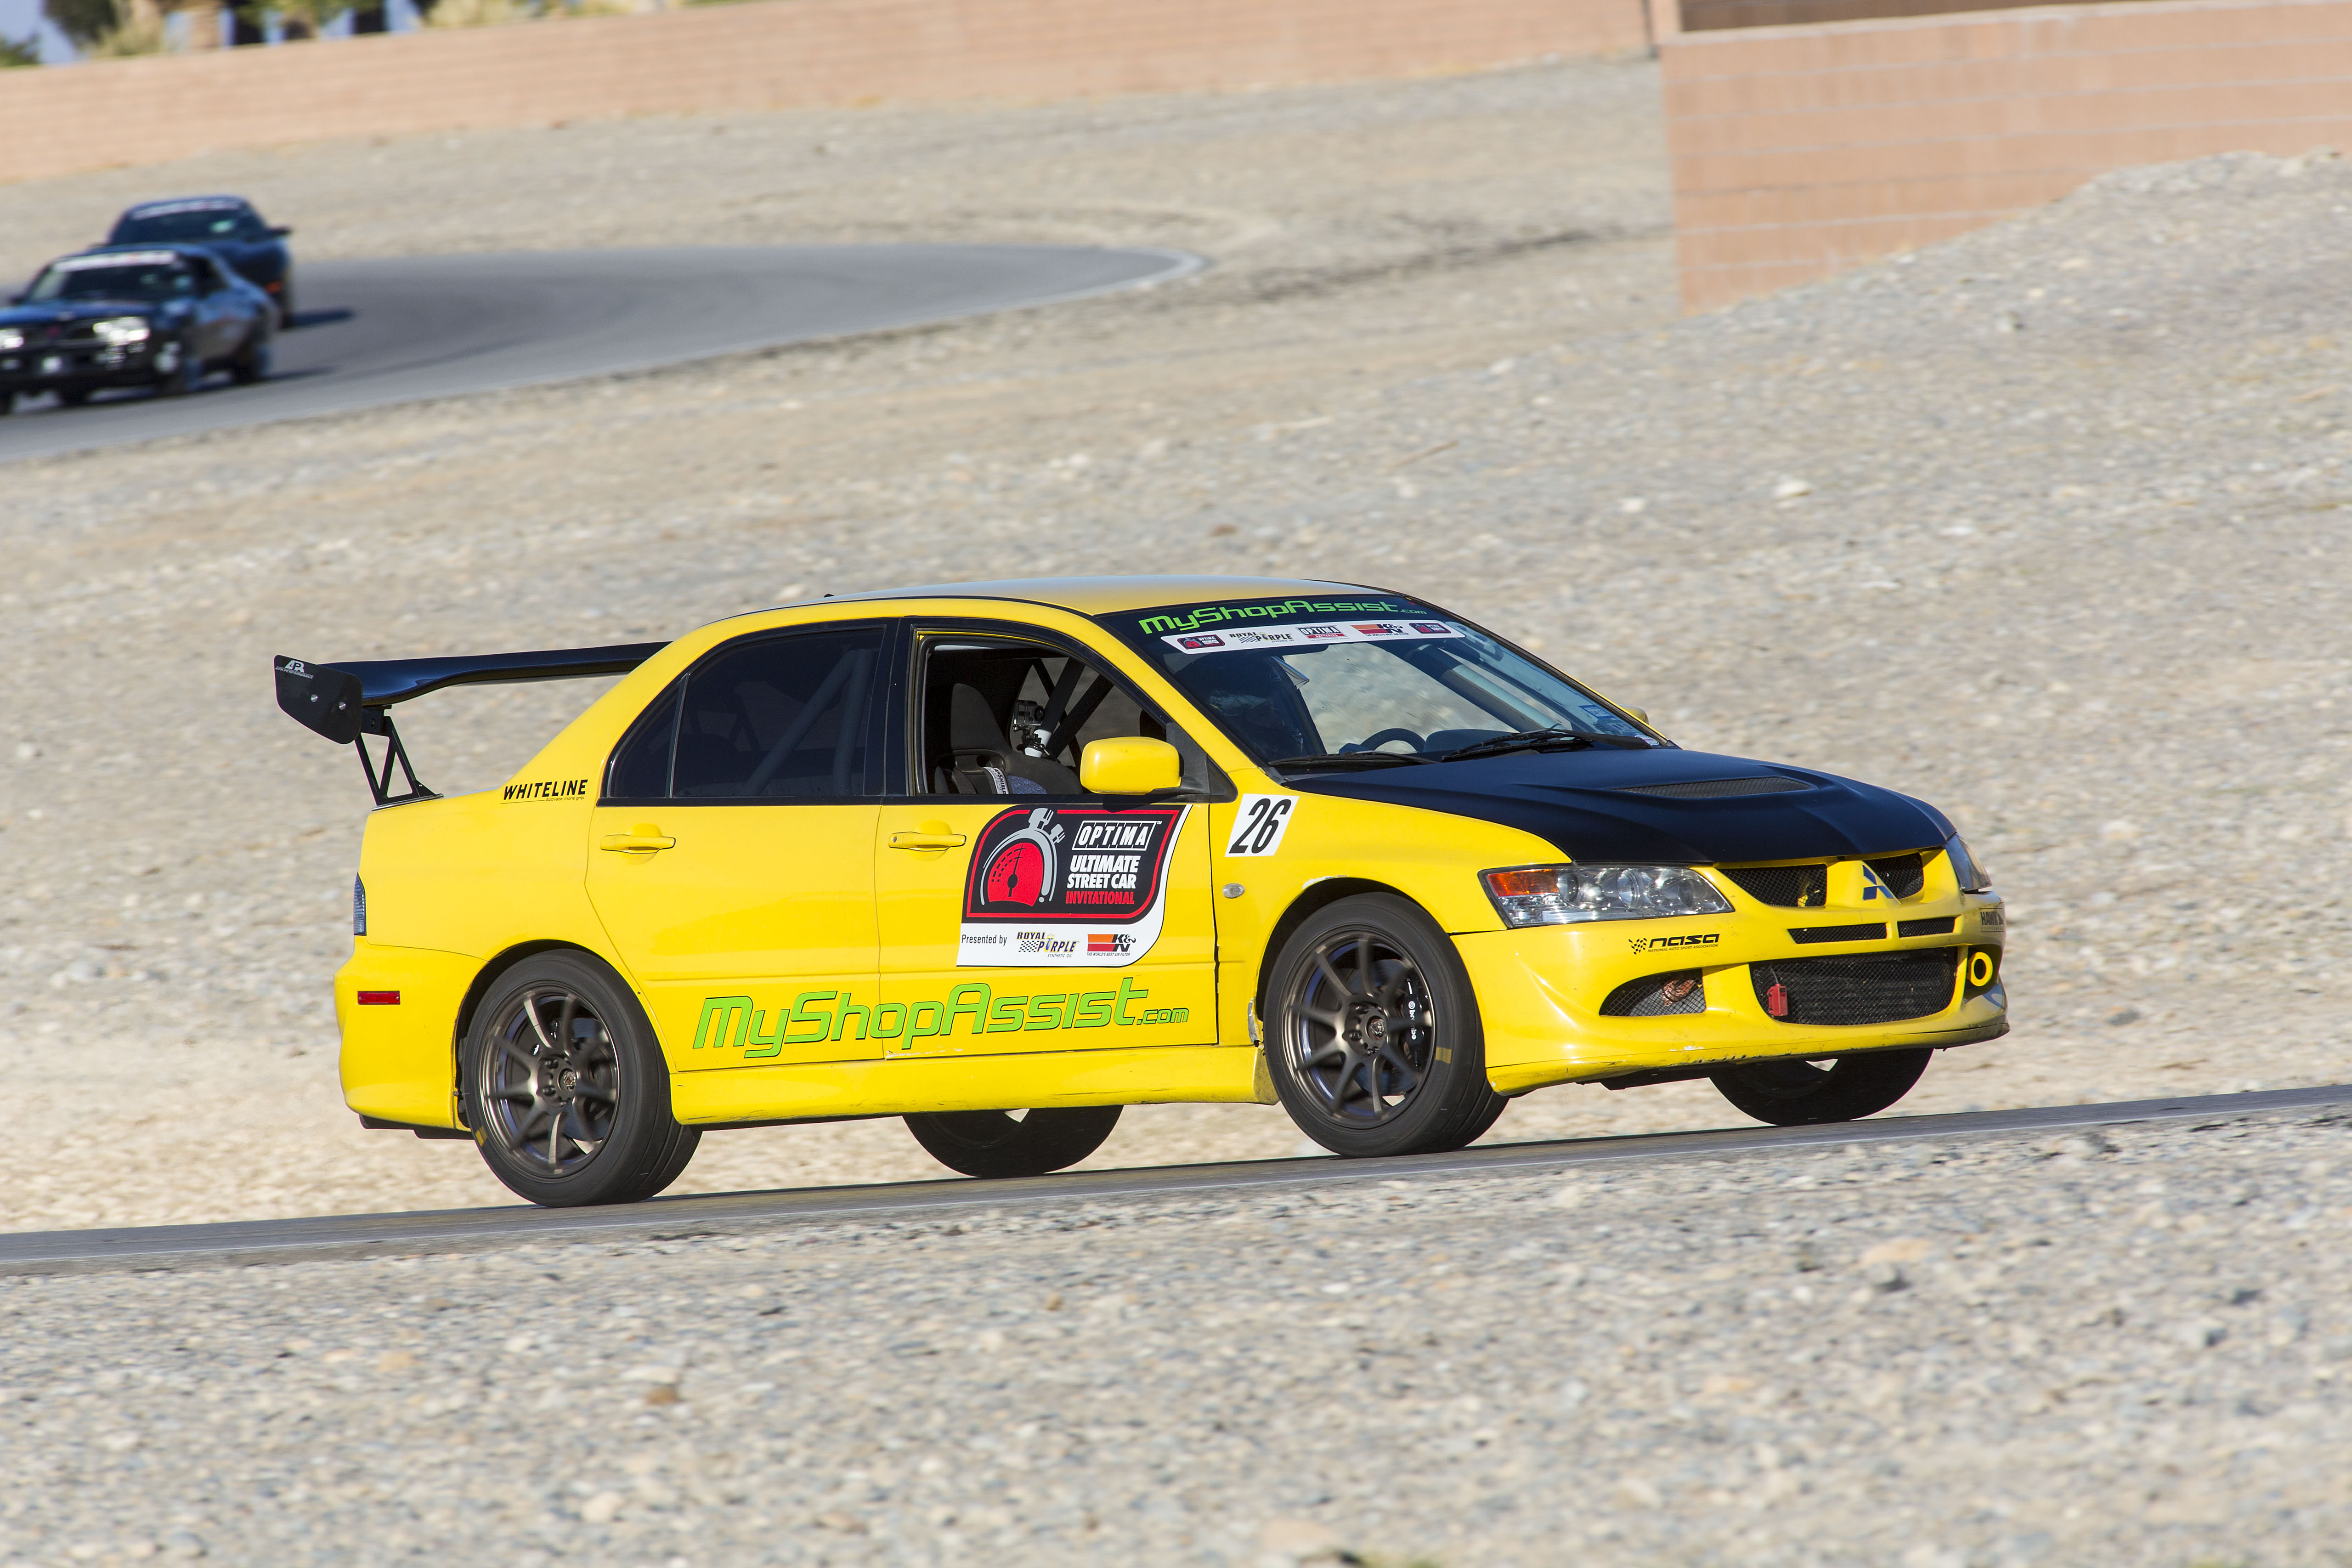 OUSCI Competitor Todd Earsley's 2003 Mitsubishi Lancer Evolution